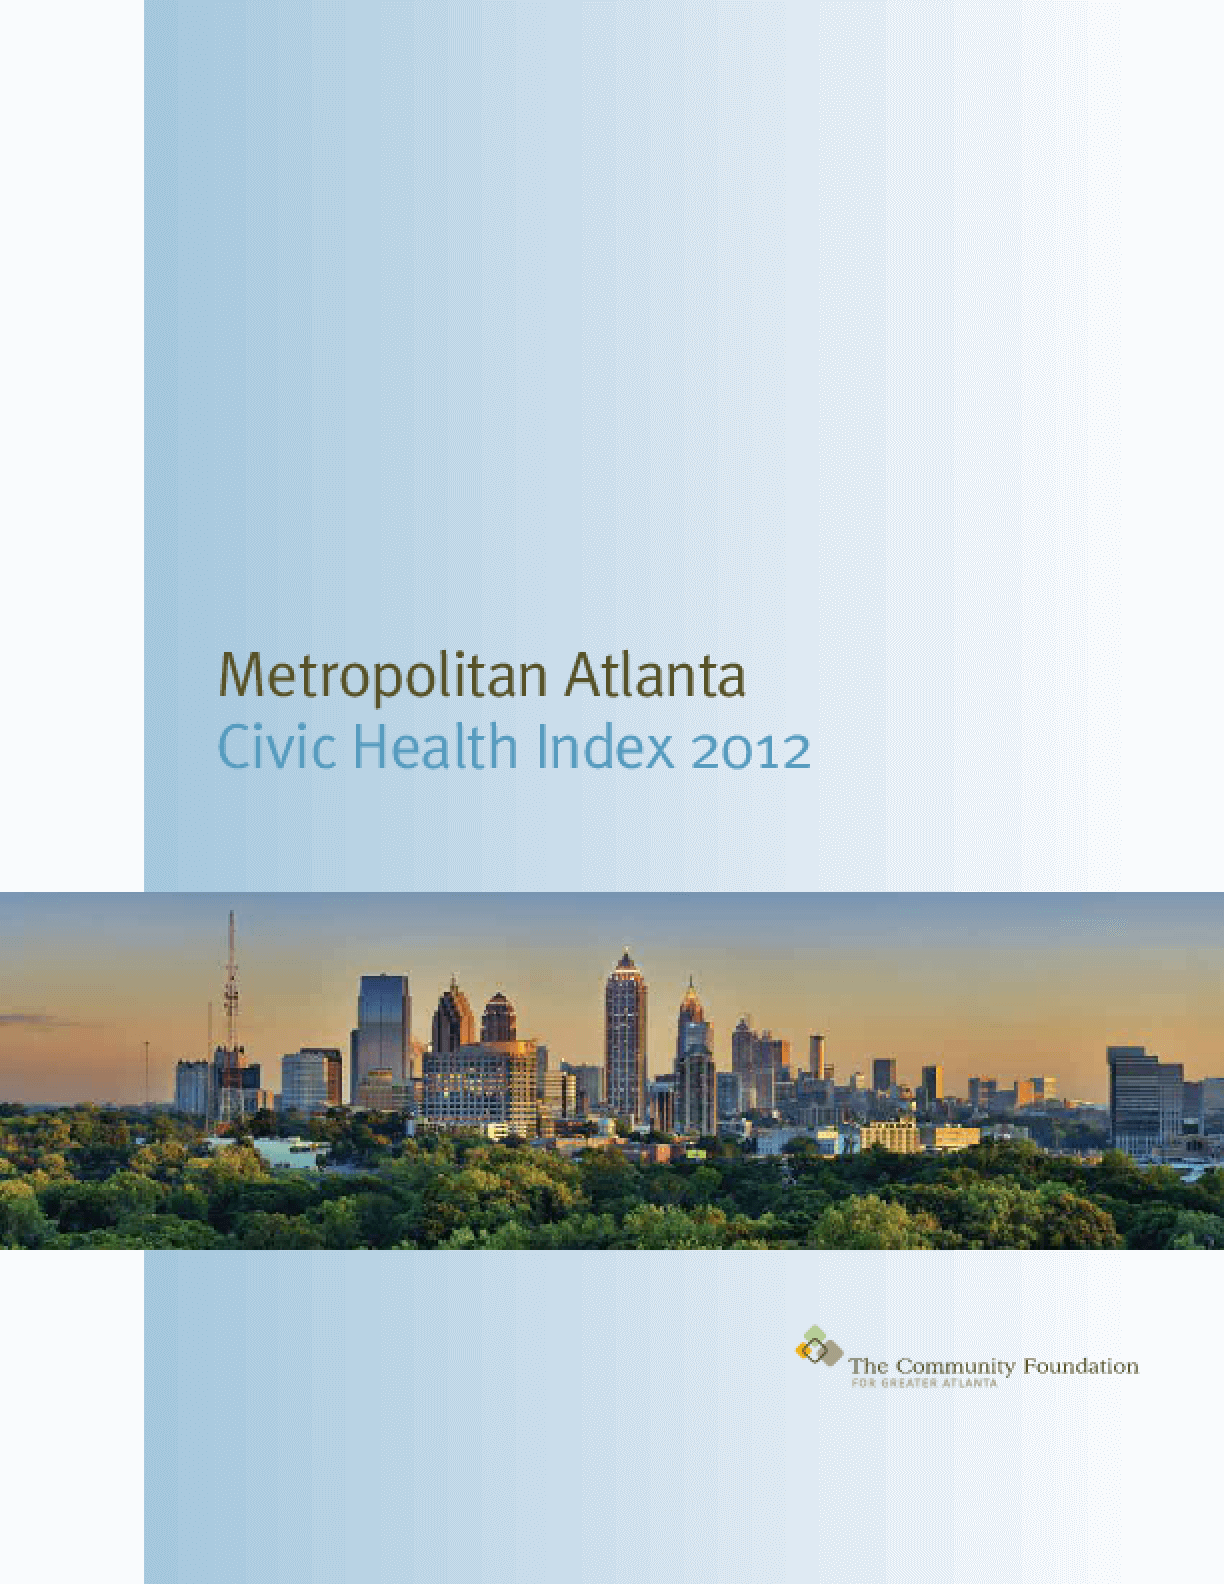 Metropolitan Atlanta: Civic Health Index 2012